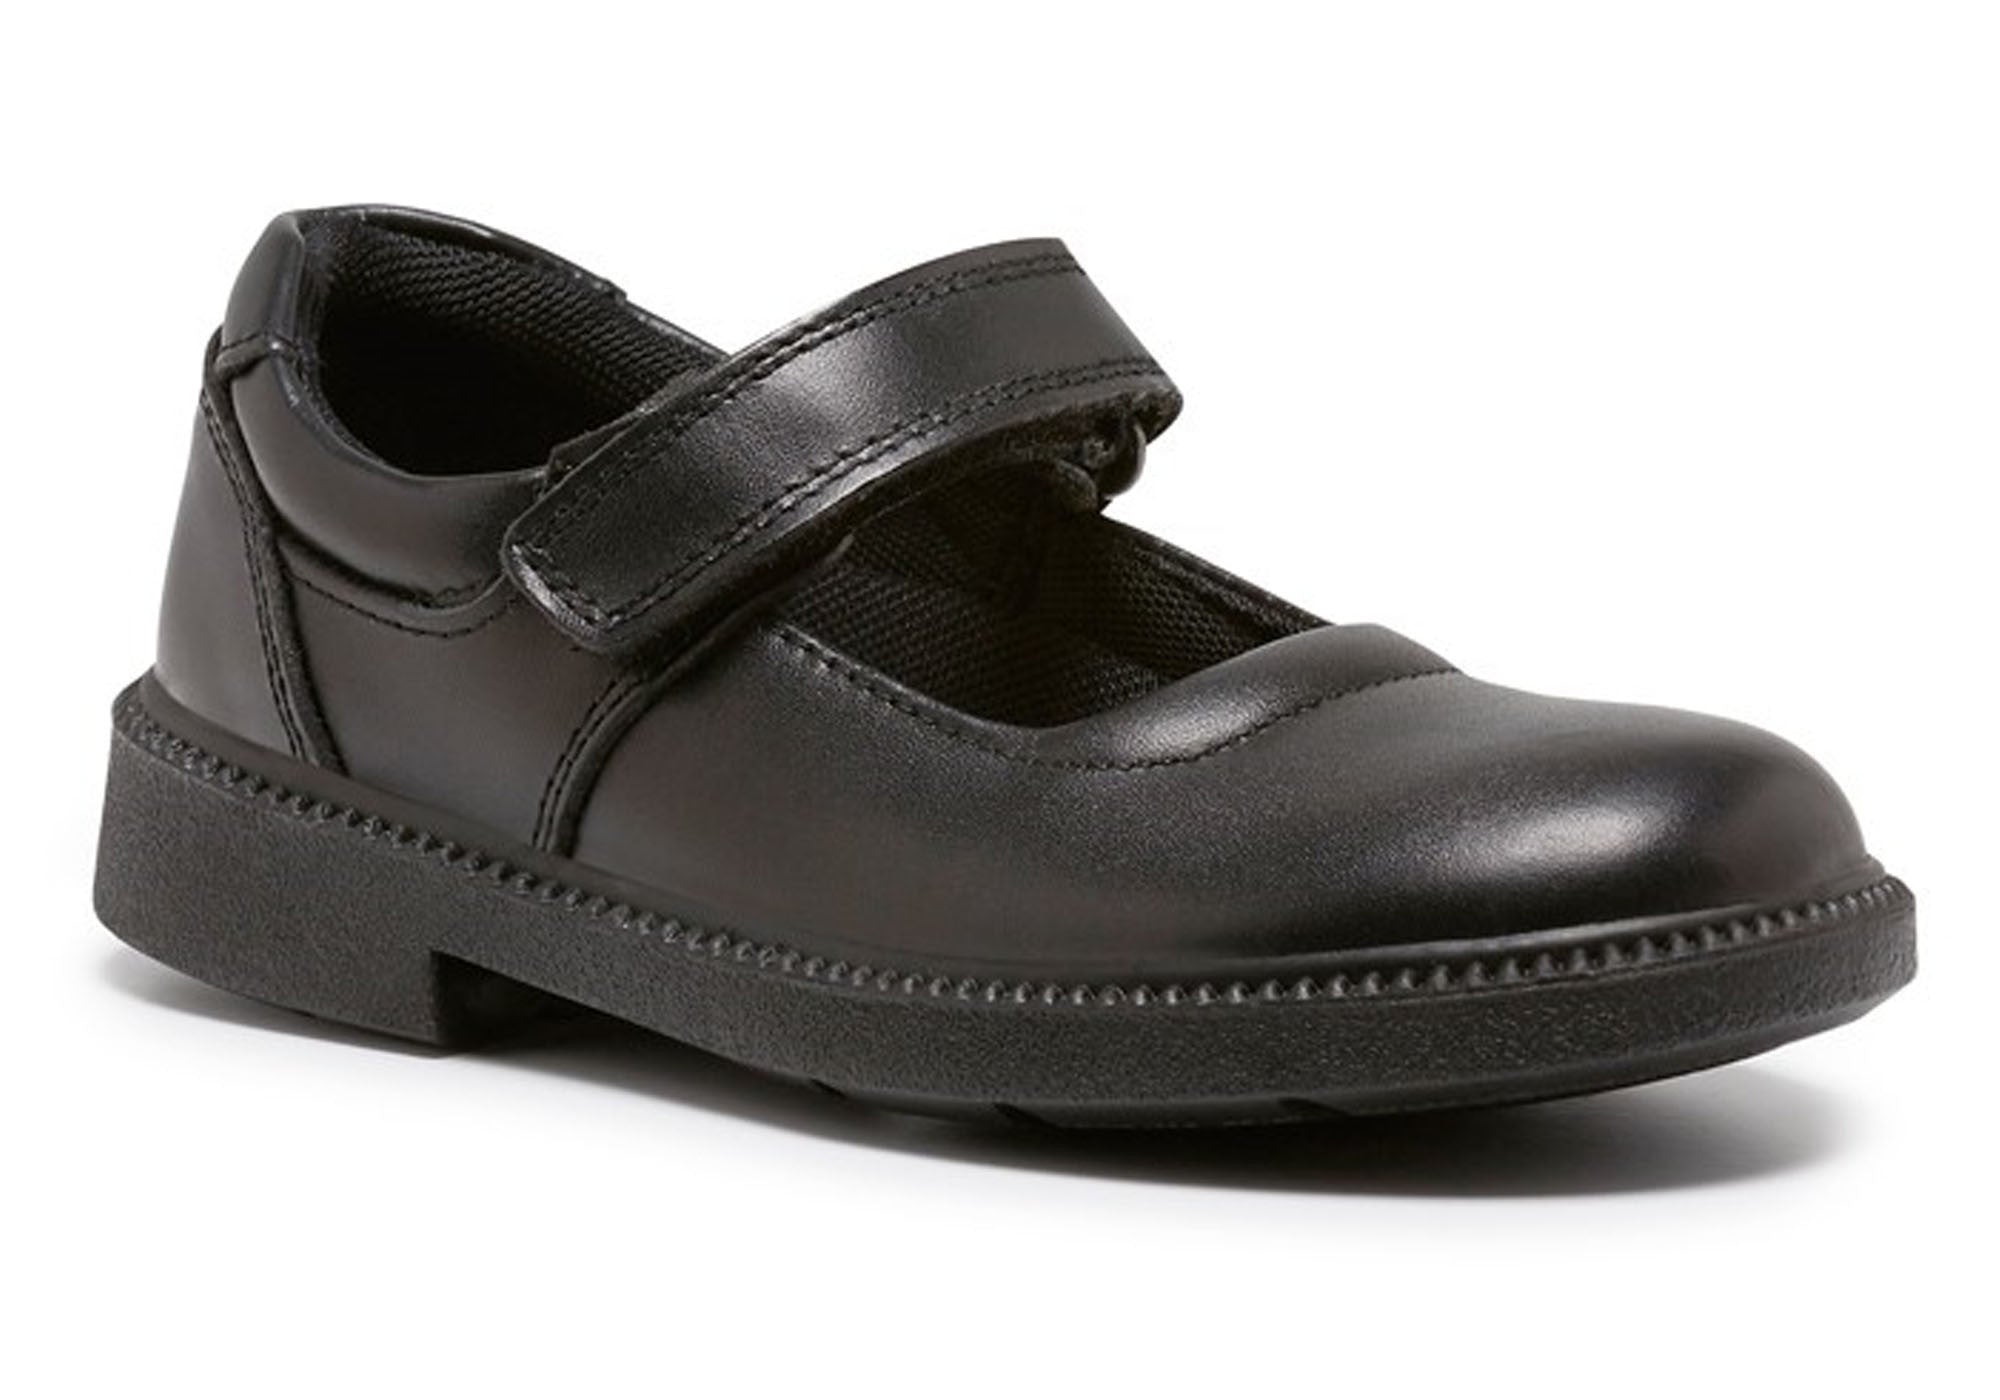 Details about New Clarks Rapture Girls Leather Mary Jane School Shoes e951b06552c1